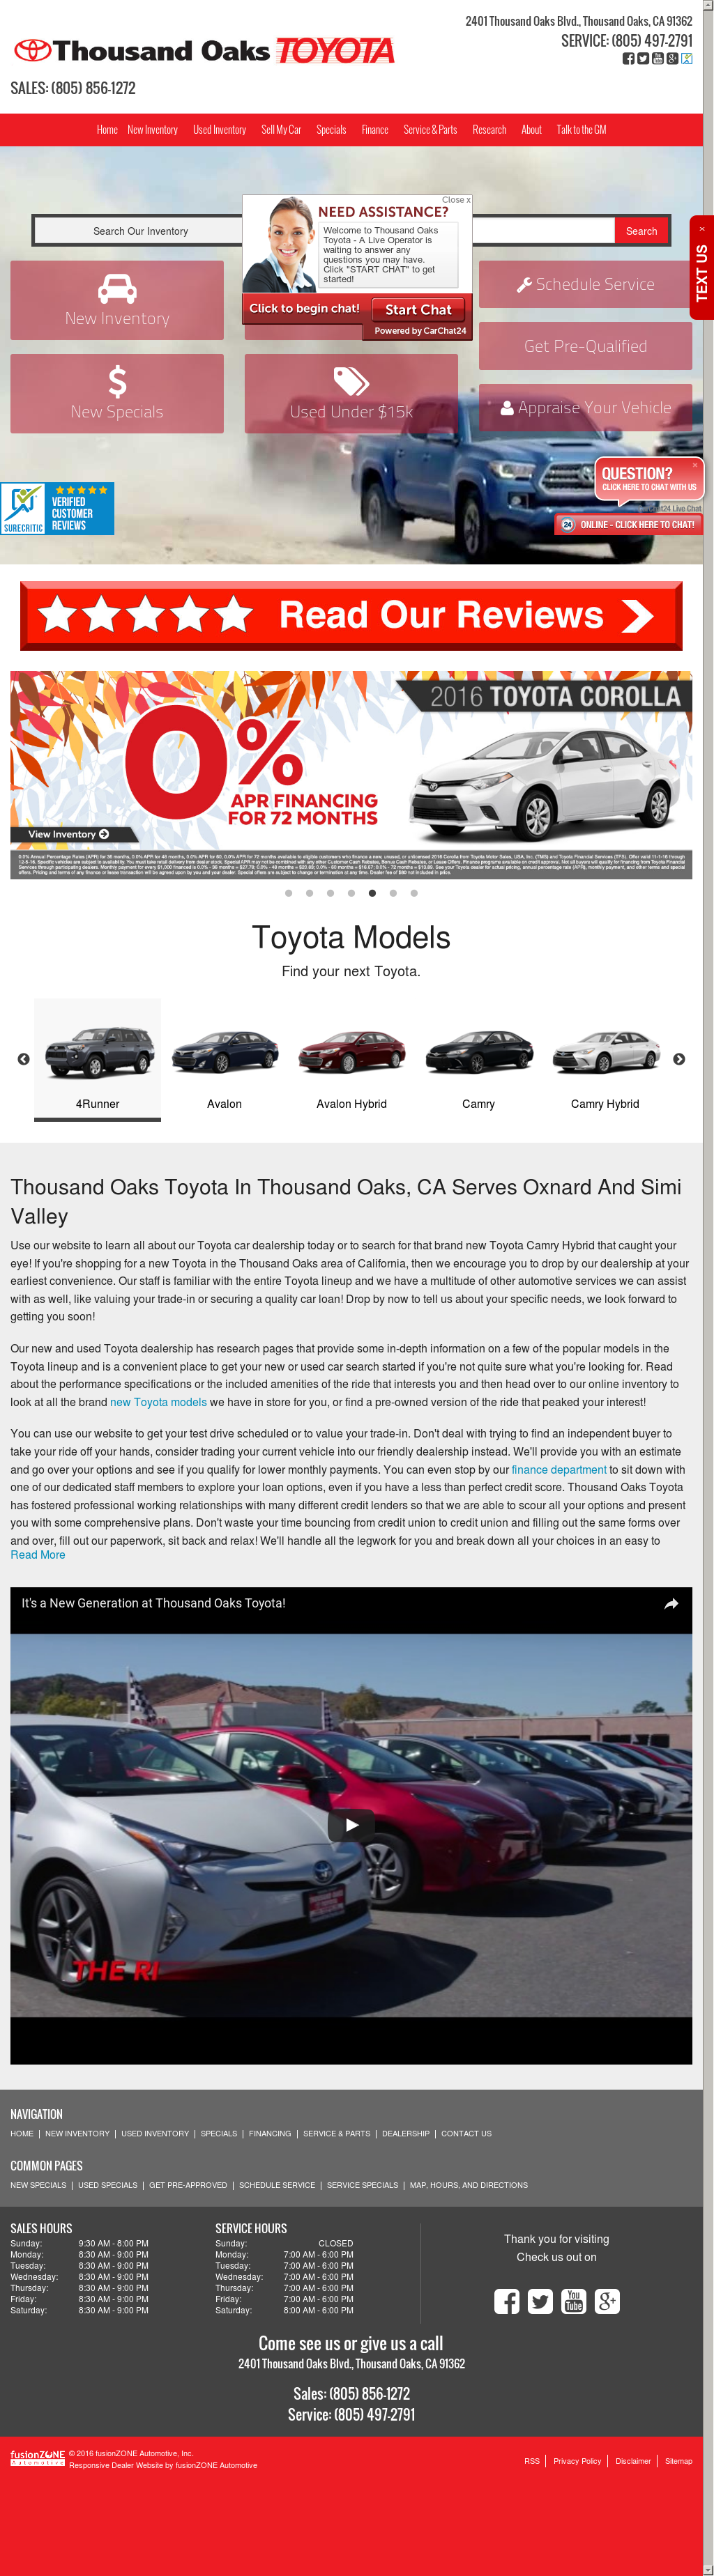 Thousandoaksscion Competitors, Revenue And Employees   Owler Company Profile